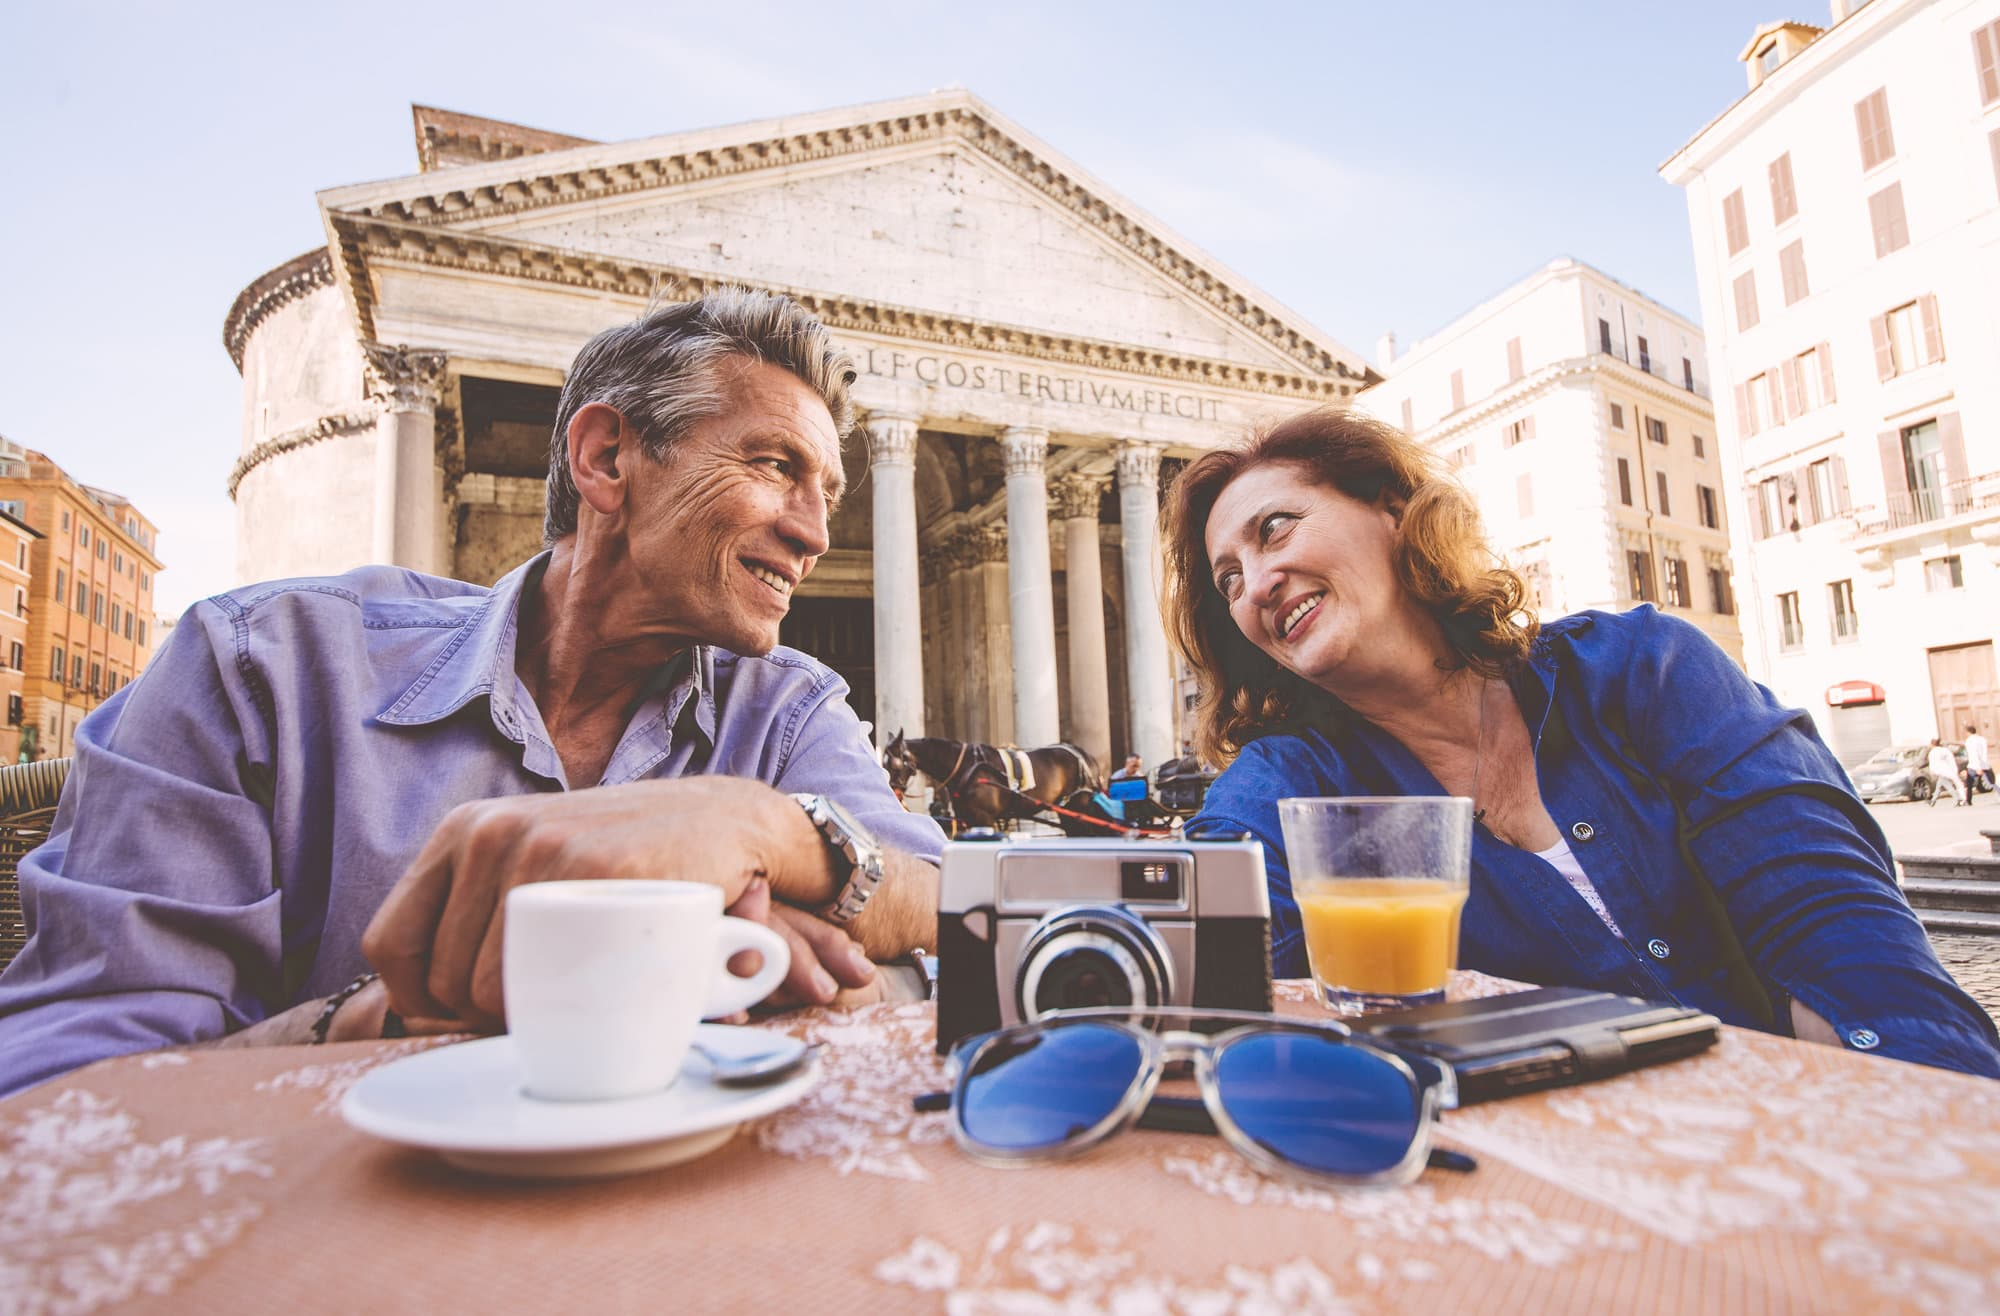 3 retirement essentials that could keep more cash in your pocket